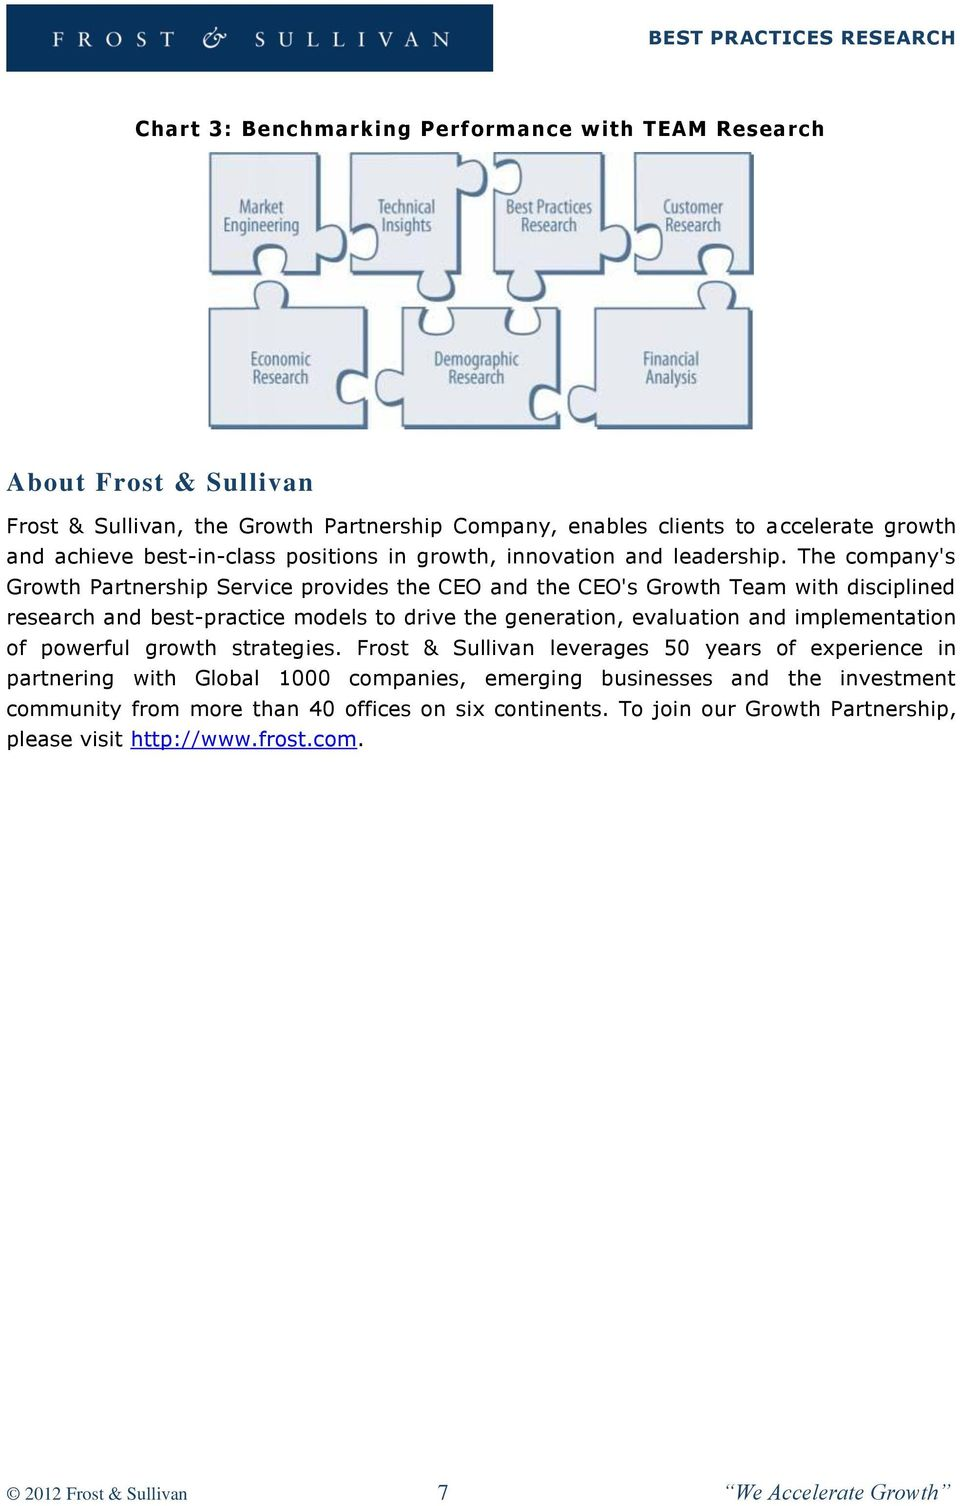 The company's Growth Partnership Service provides the CEO and the CEO's Growth Team with disciplined research and best-practice models to drive the generation, evaluation and